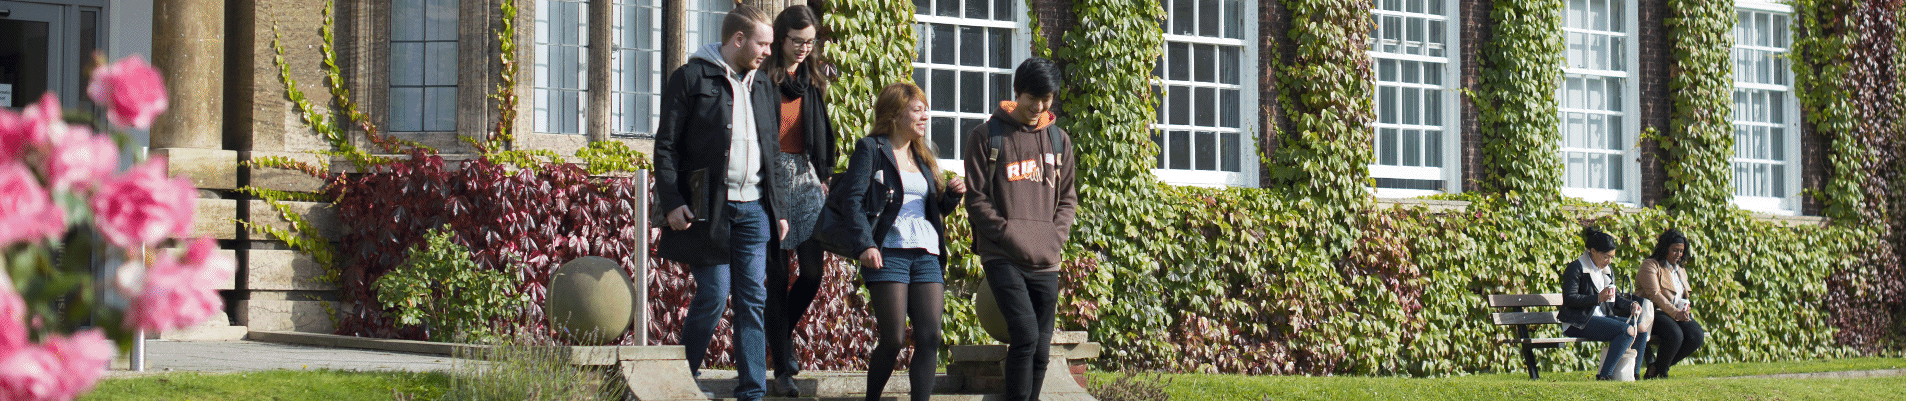 HUBS-Students-on-steps-Derwent-Exterior-Landscape-UNI-7286-Cropped-1906x401